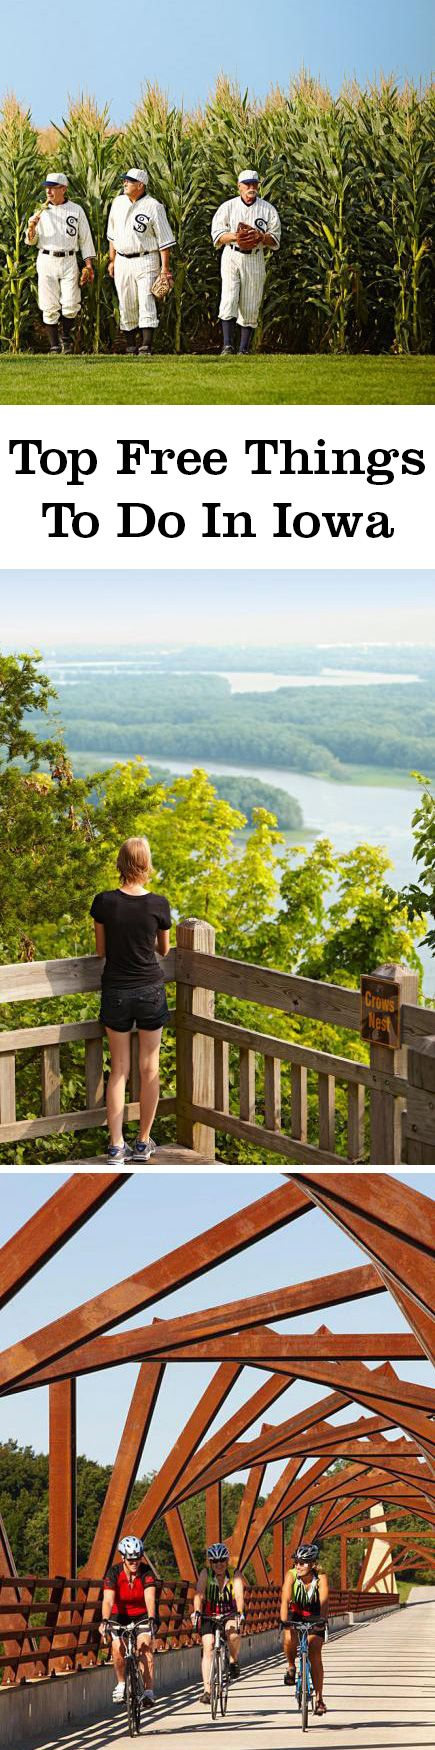 The Des Moines Art Center, Dubuque arboretum, American Gothic House Center and all state parks are just some of the free things to do in Iowa.